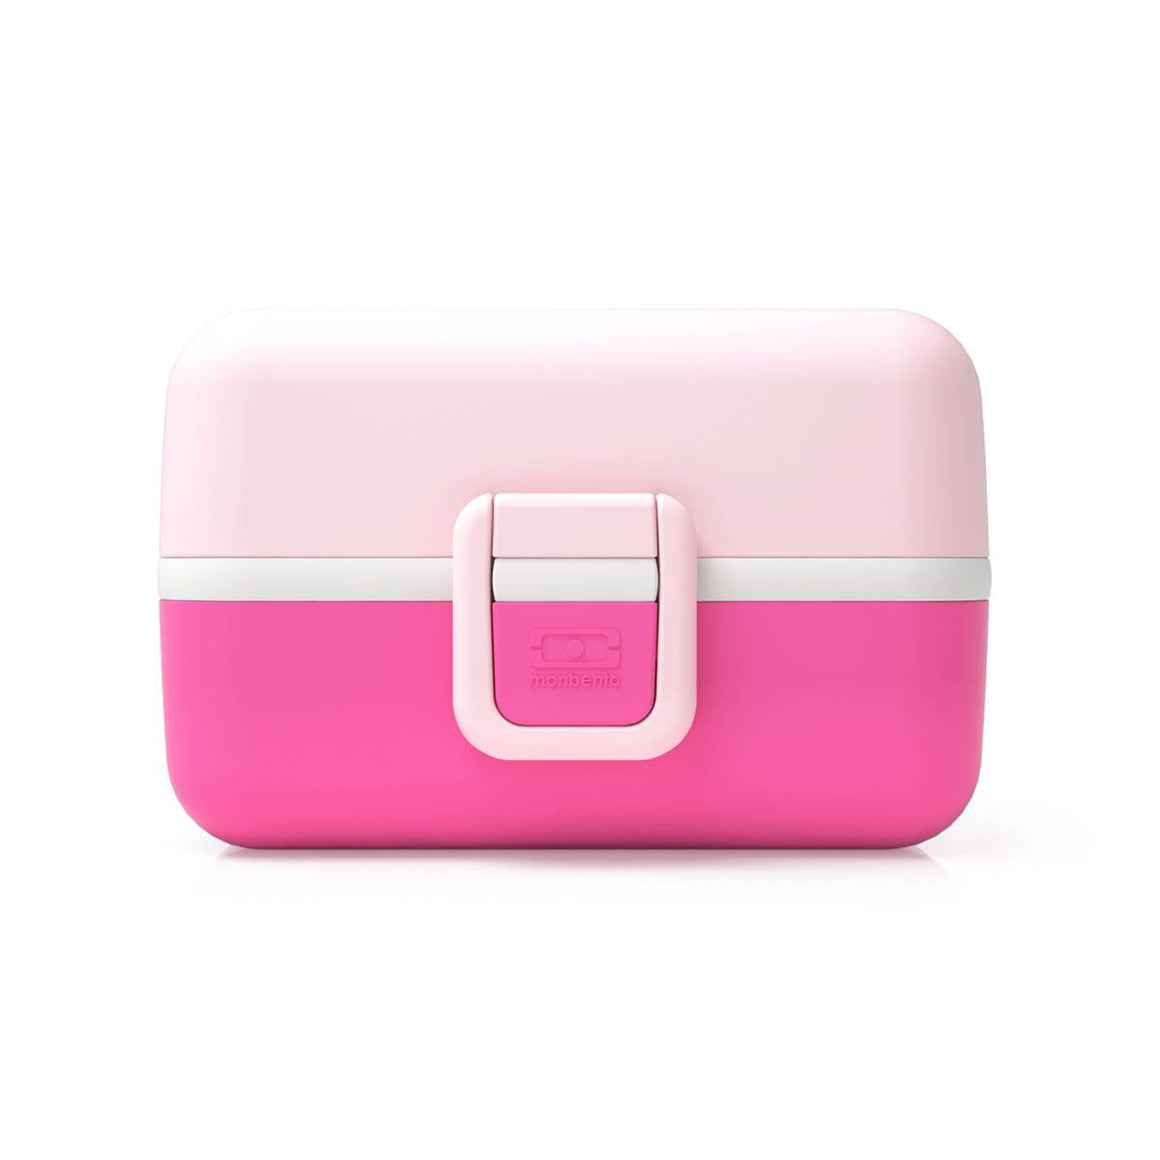 A mutliple compartment rectangular childrens lunchbox shown closed. Featuring a range of colours: Hot Pink, Pastel pink and white.